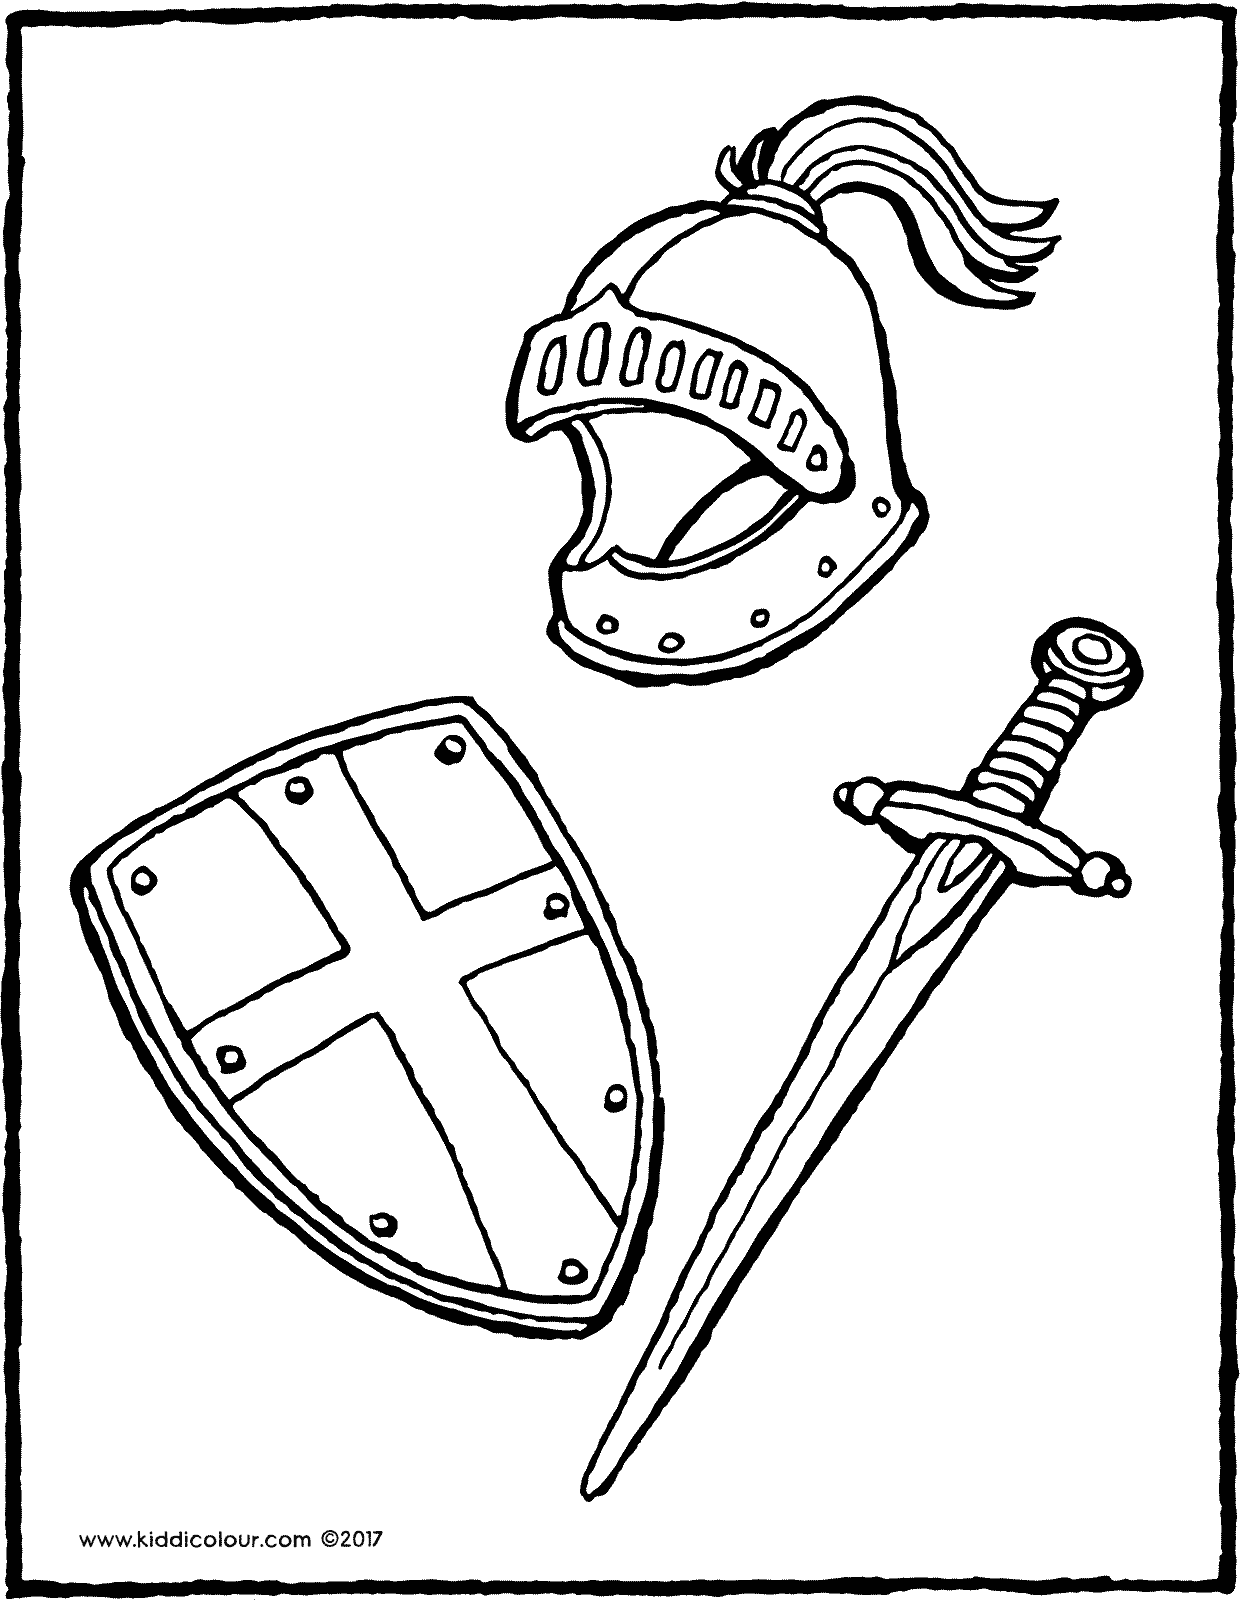 sword coloring pages - photo#26